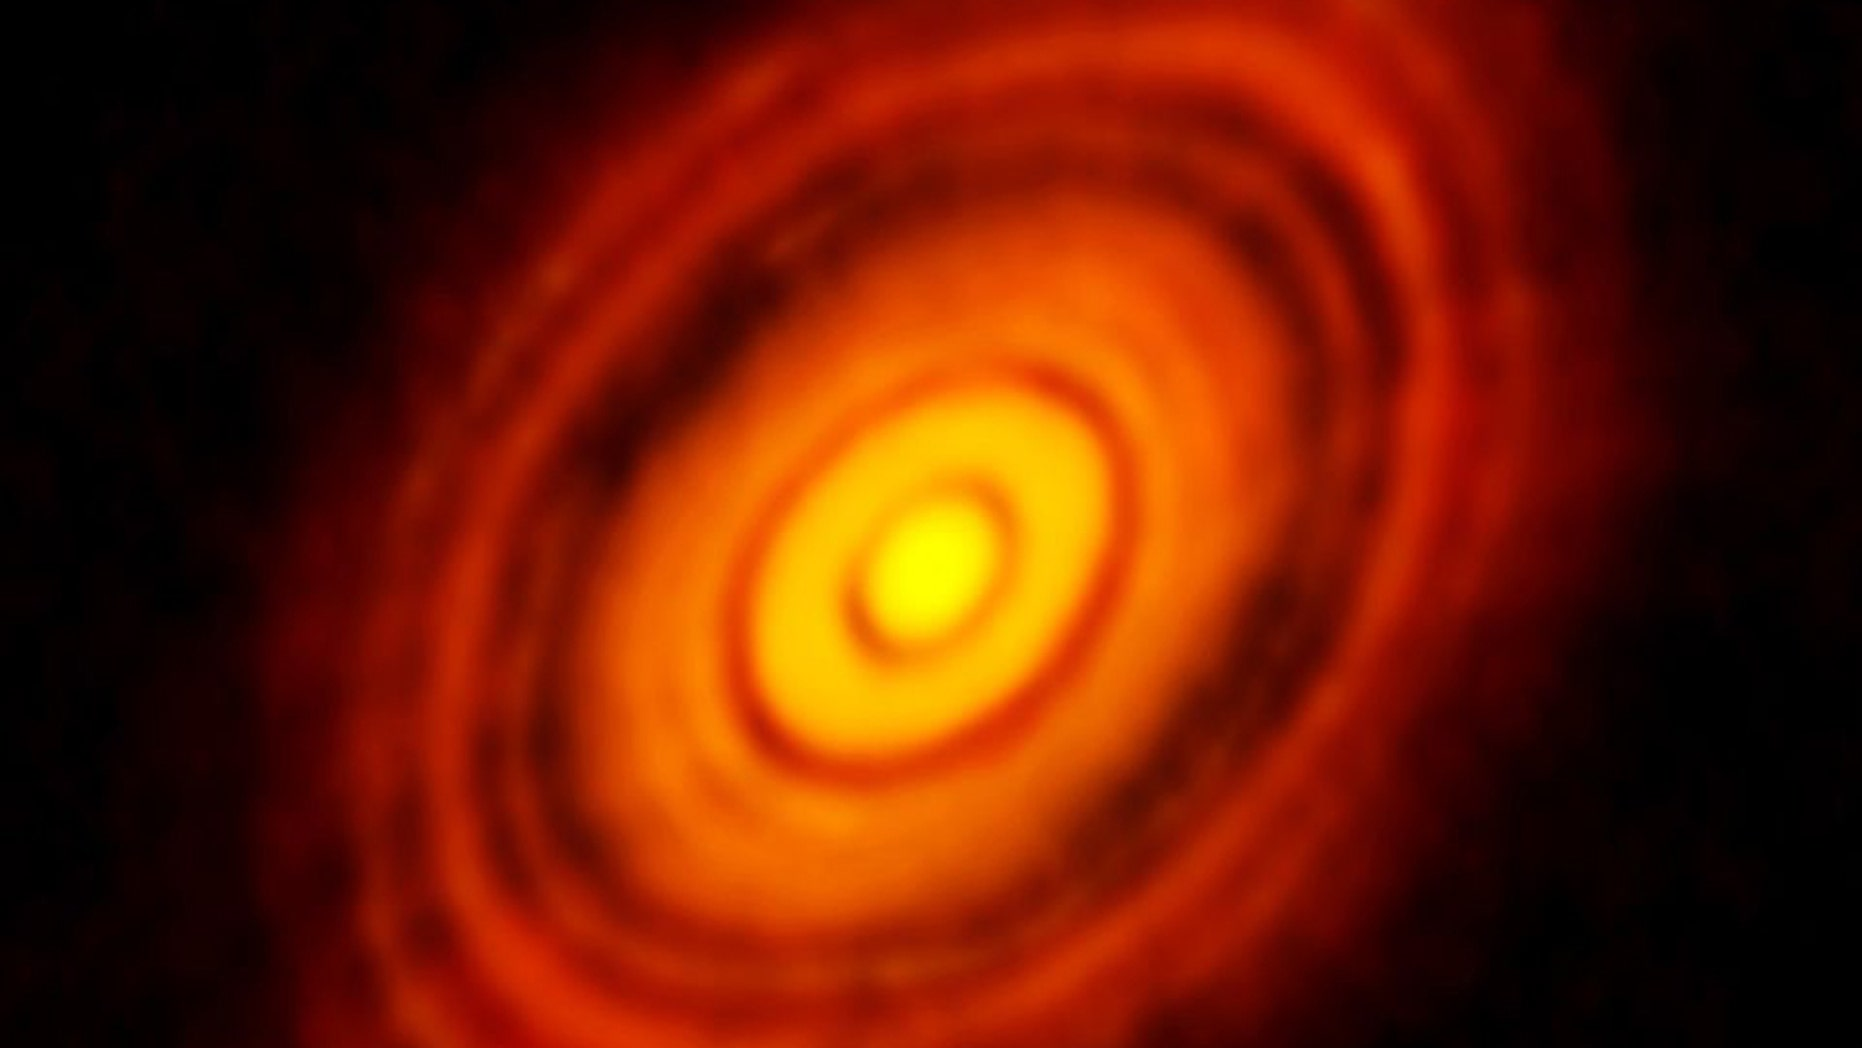 The Atacama Large Millimeter/Submillimeter Array (ALMA) in Chile captured this picture of disks that formed around a young star about 450 light years away from our planet. Now, scientists are proposing that similar disks could have formed around our sun in the early solar system, creating the seeds for our planets. (Credit: ALMA (ESO/NAOJ/NRAO), NSF)